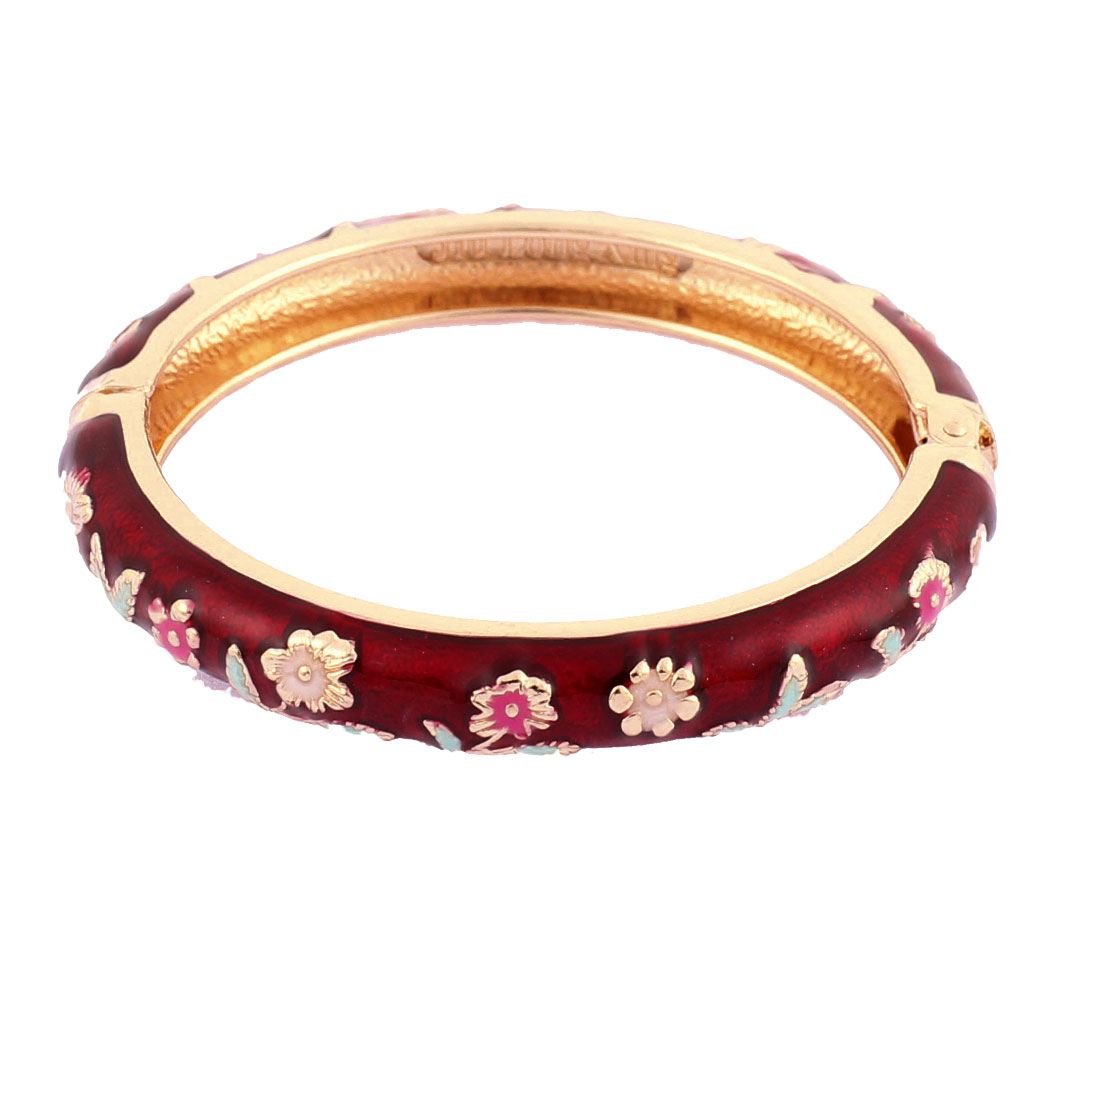 Girls Spring Closure Floral Enamel Round Bracelet Bangle Wrist Decoration Burgundy